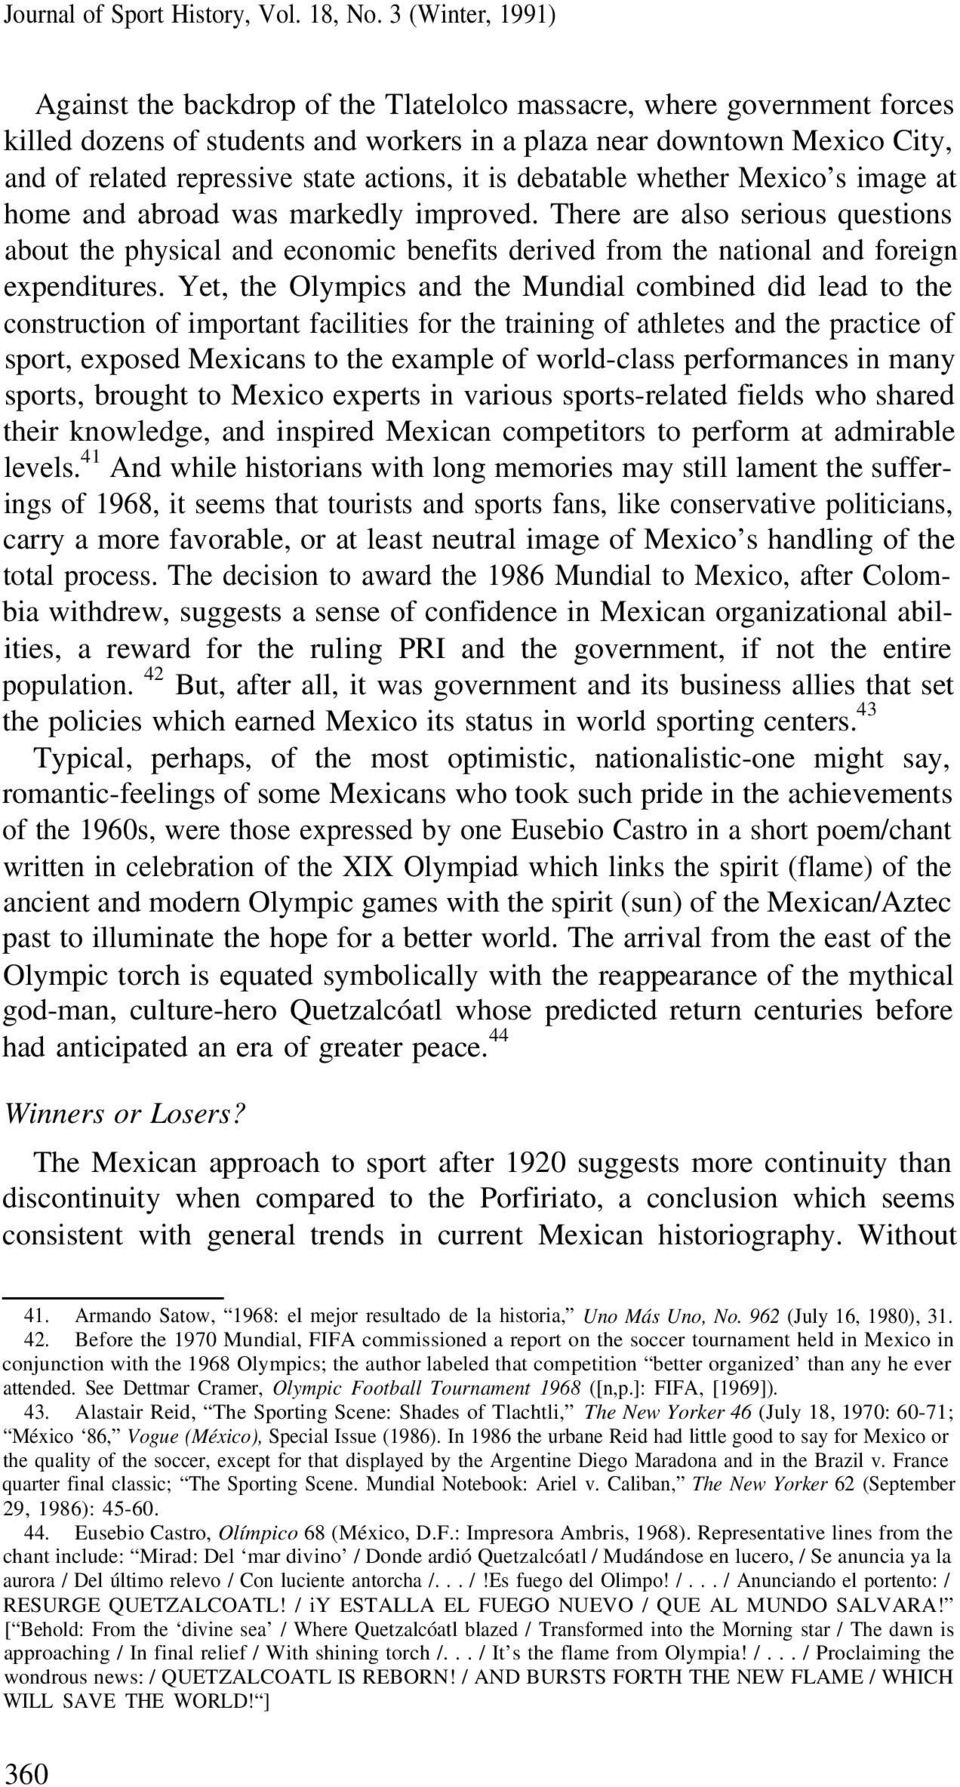 Yet, the Olympics and the Mundial combined did lead to the construction of important facilities for the training of athletes and the practice of sport, exposed Mexicans to the example of world-class